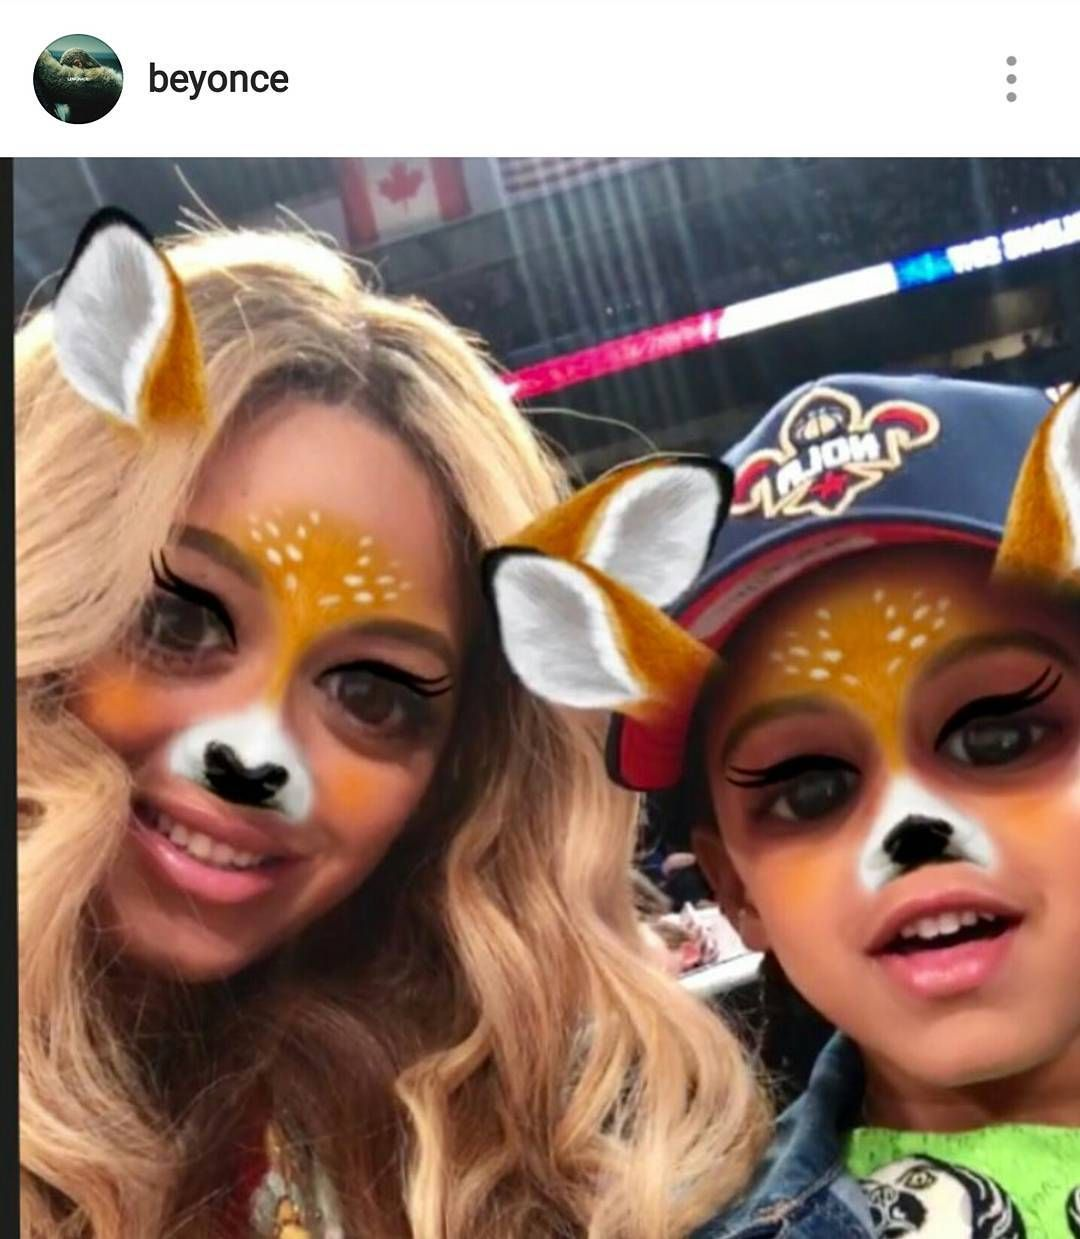 #Beyonce just posted this picture of her and #BlueIvy using a snapchat filter!  The gag is she supposedly don't have a snapchat account!